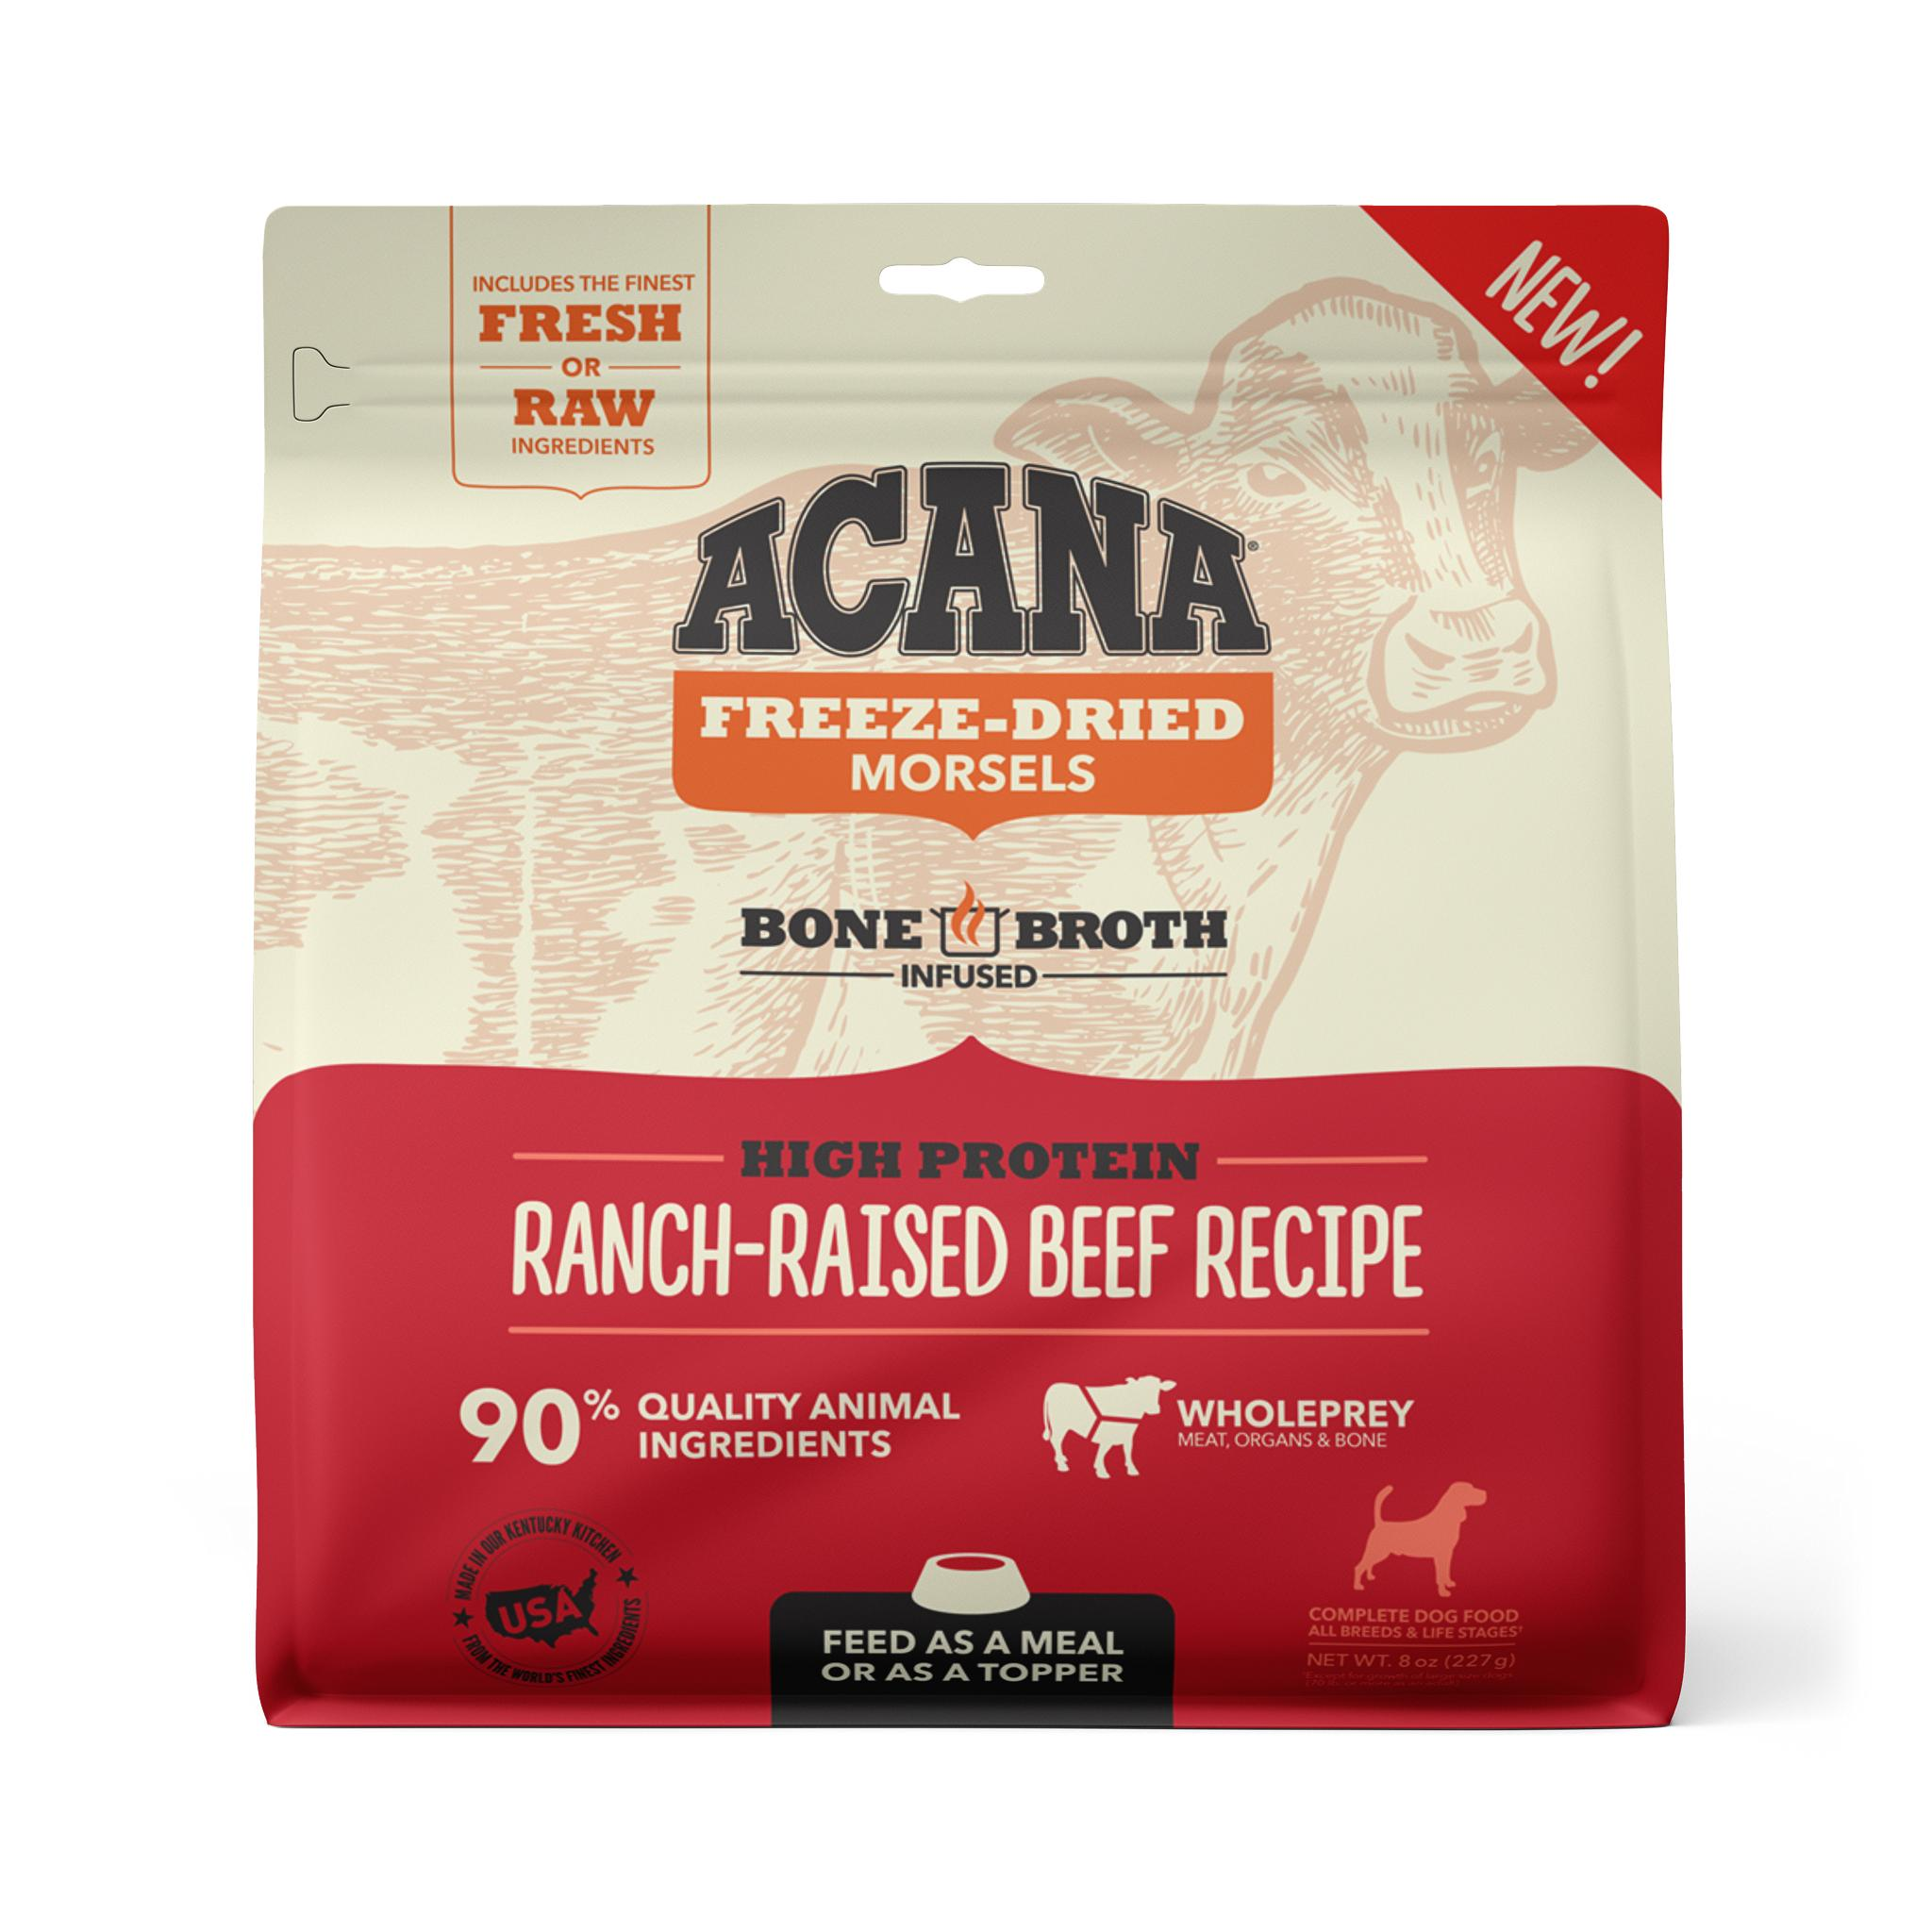 ACANA Ranch-Raised Beef Recipe Morsels Grain-Free Freeze-Dried Dog Food, 8-oz (Size: 8-oz) Image